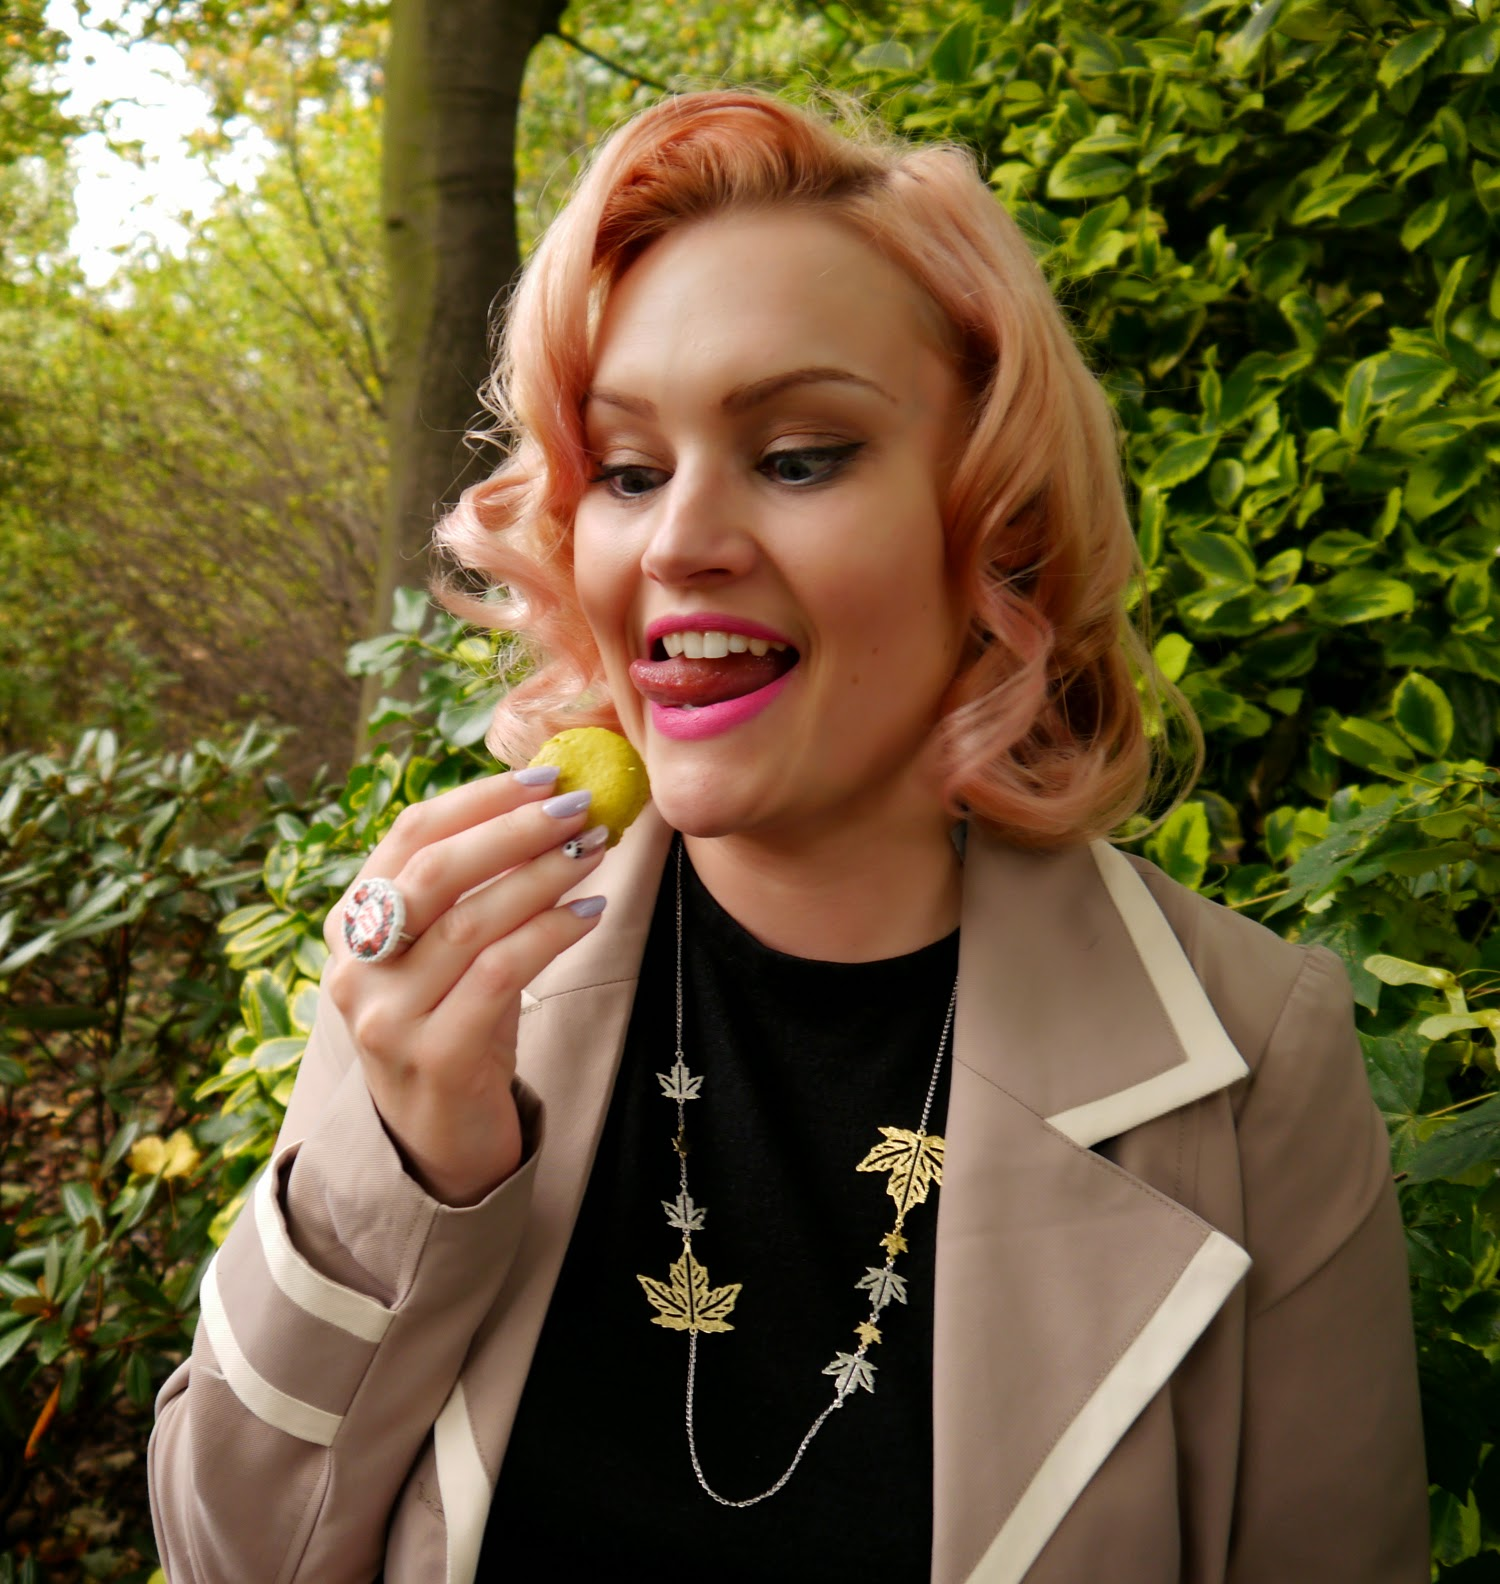 peach hair, vintage hair, pin up, pin curl, macaron, cake crazy, silly face, jewellery, Autumn style, Fall, Princes Street